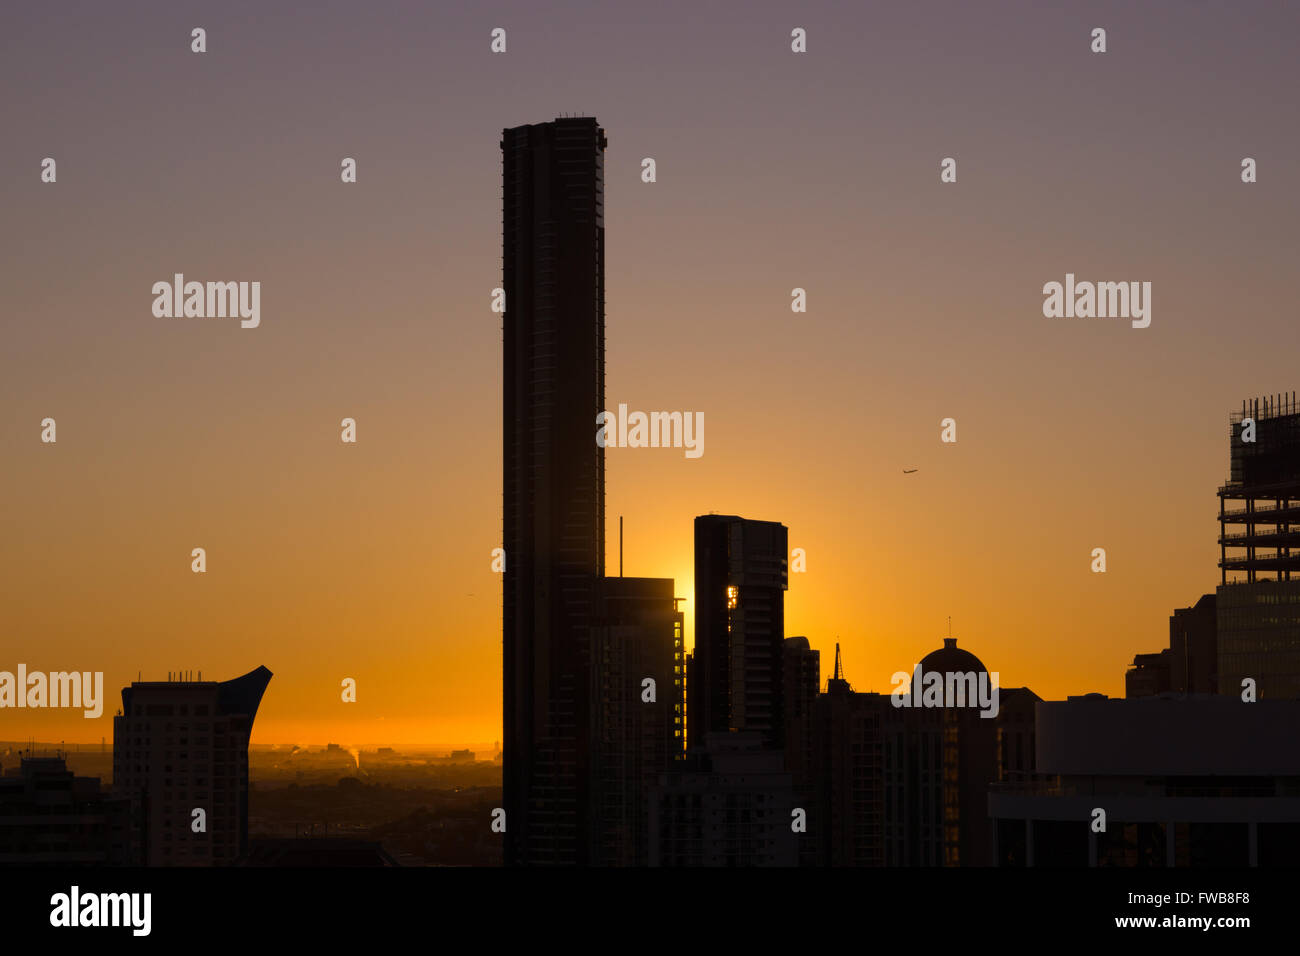 Brisbane skyline at dawn, buildings in silhouette - Stock Image